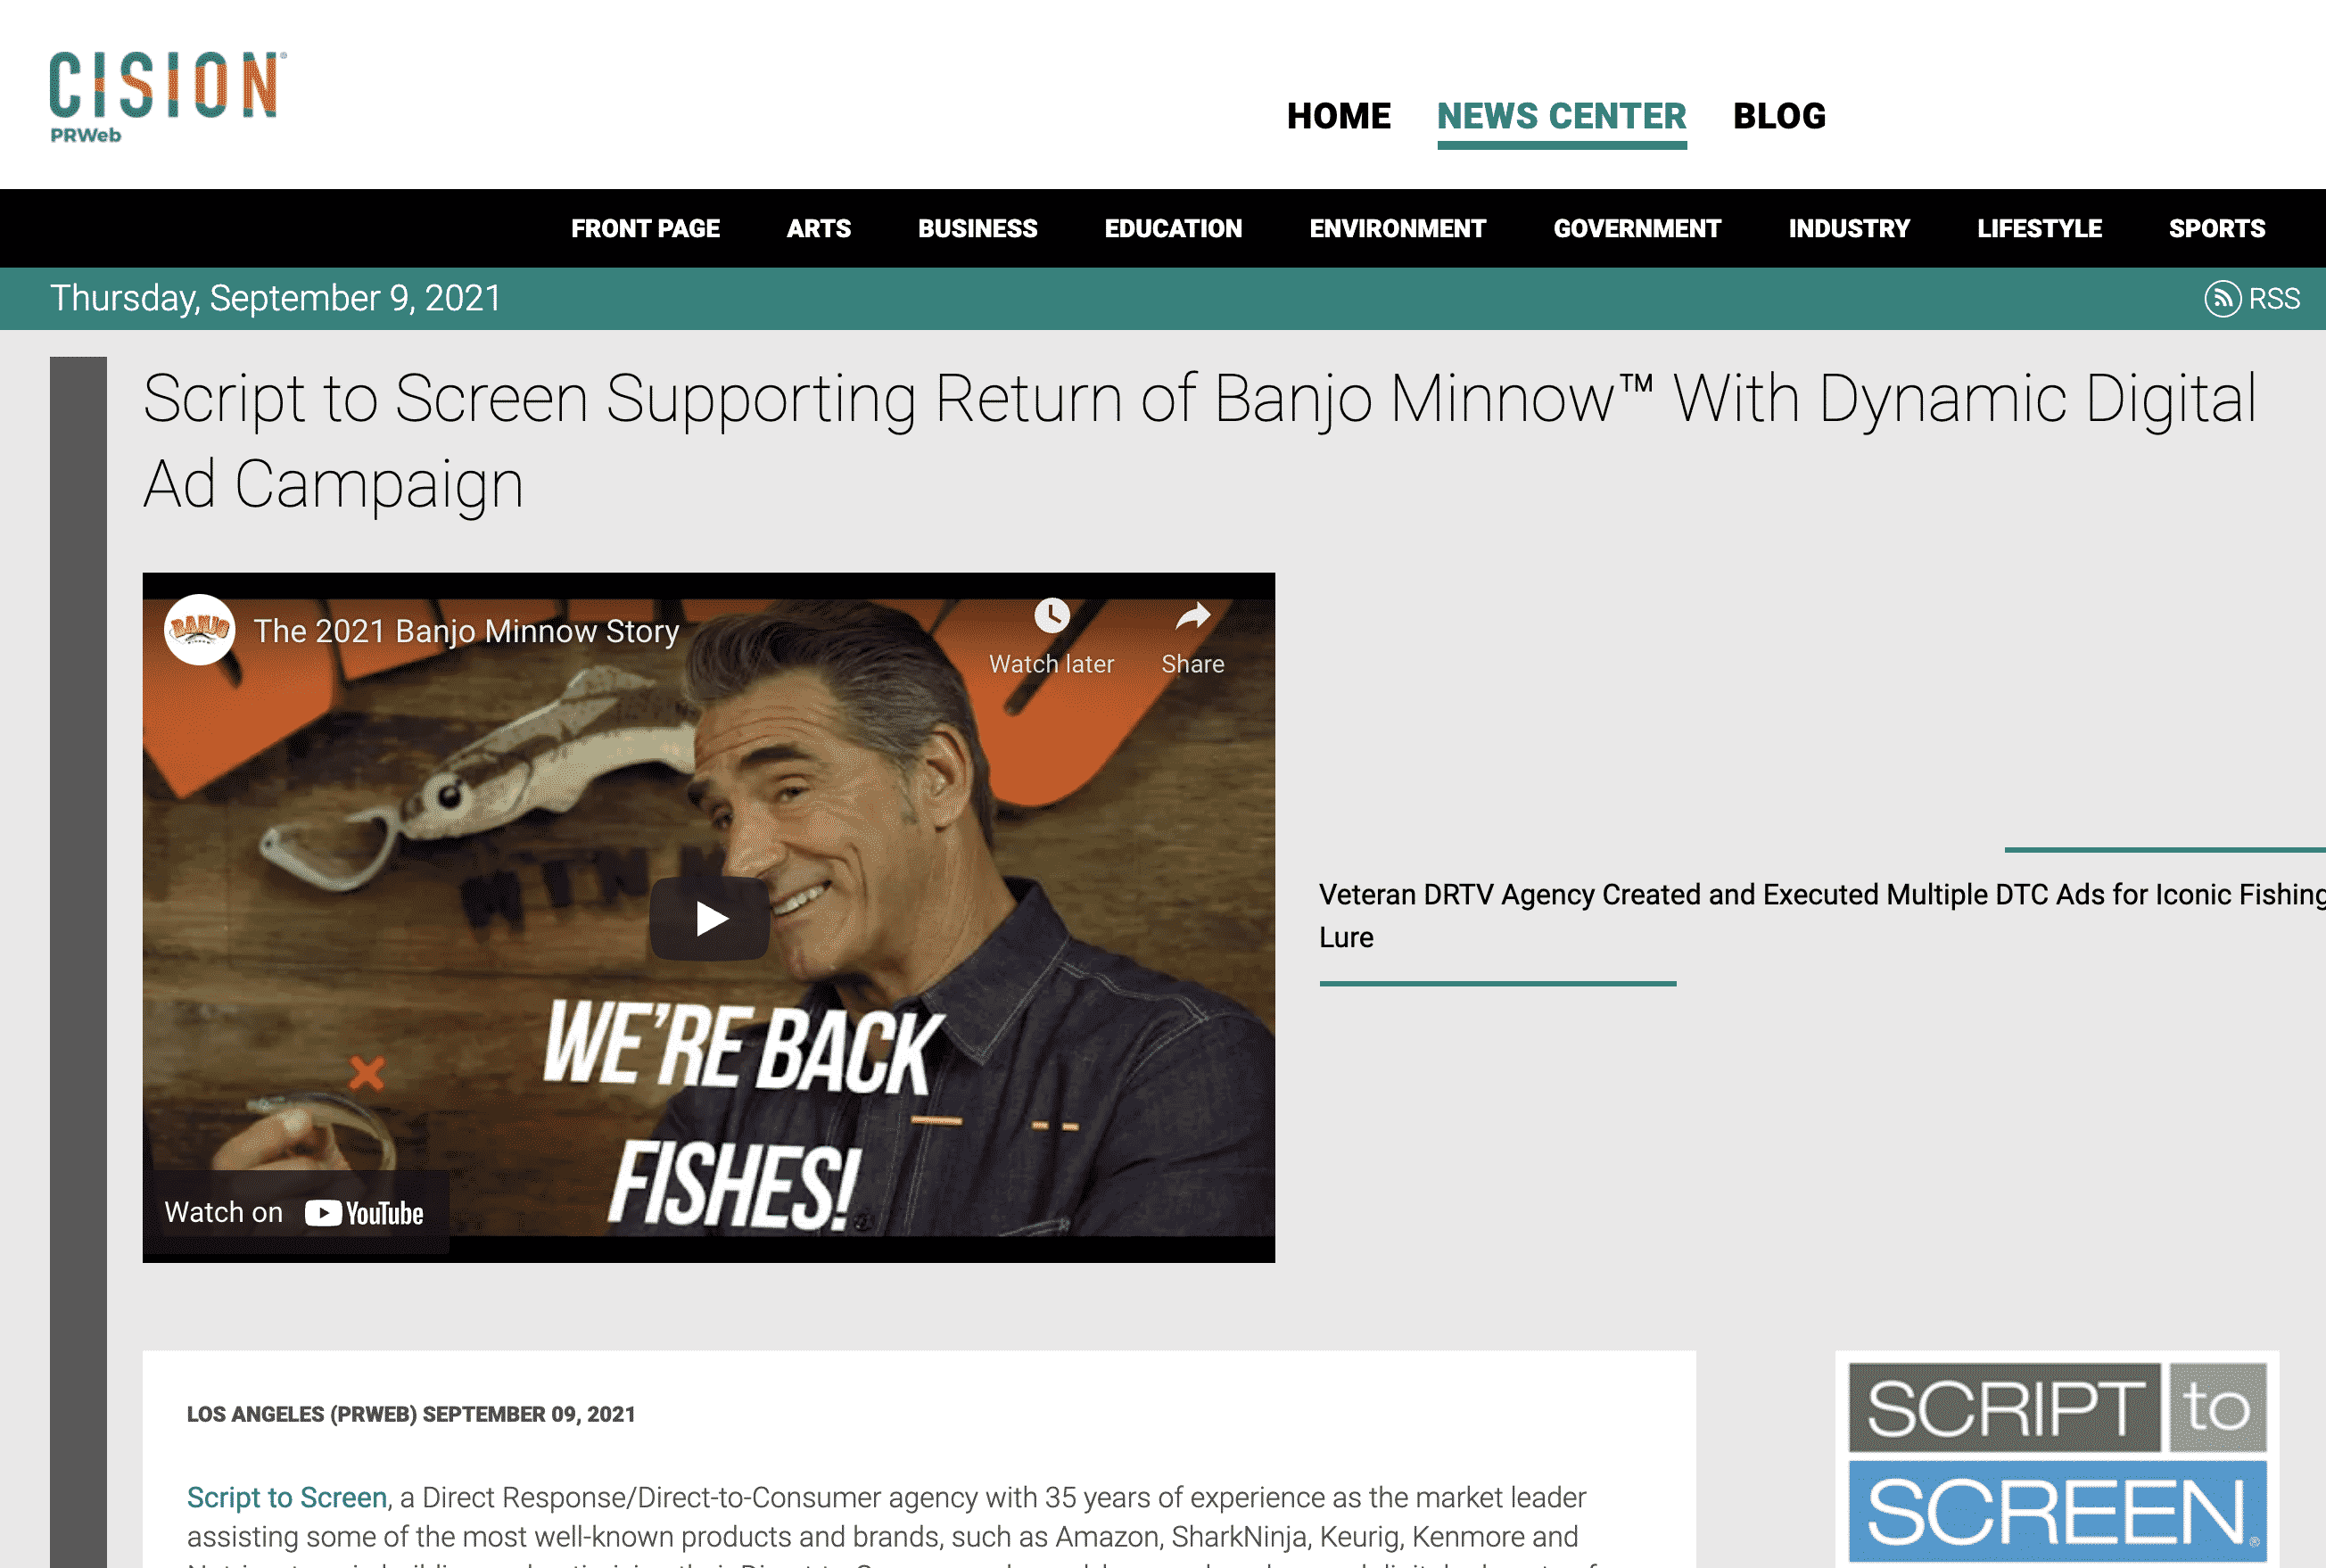 Script to Screen Supporting Return of Banjo Minnow™ With Dynamic Digital Ad Campaign